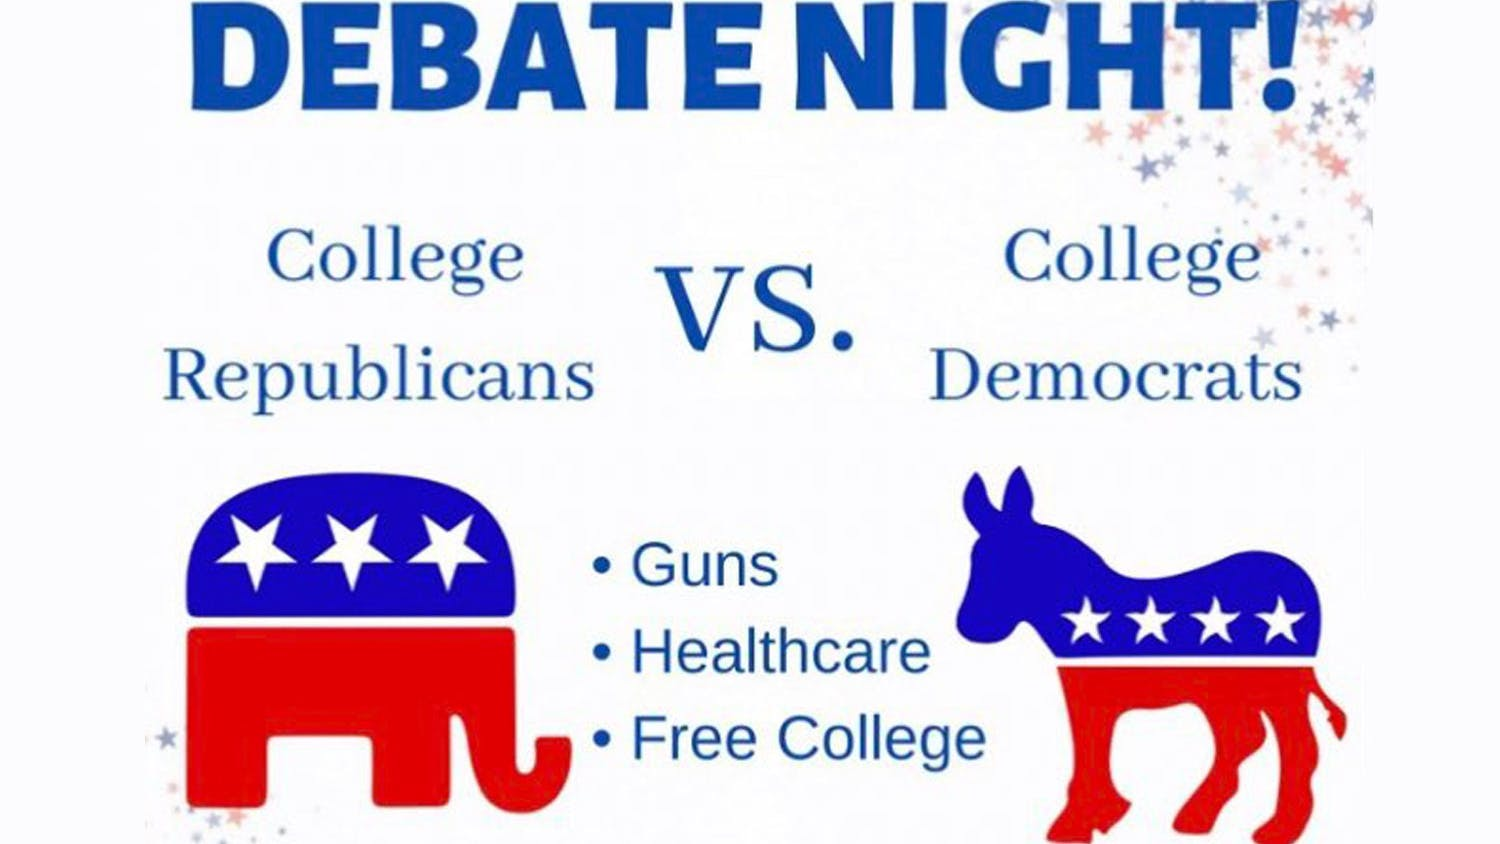 Poster for a debate between the College Republicans and the College Democrats.